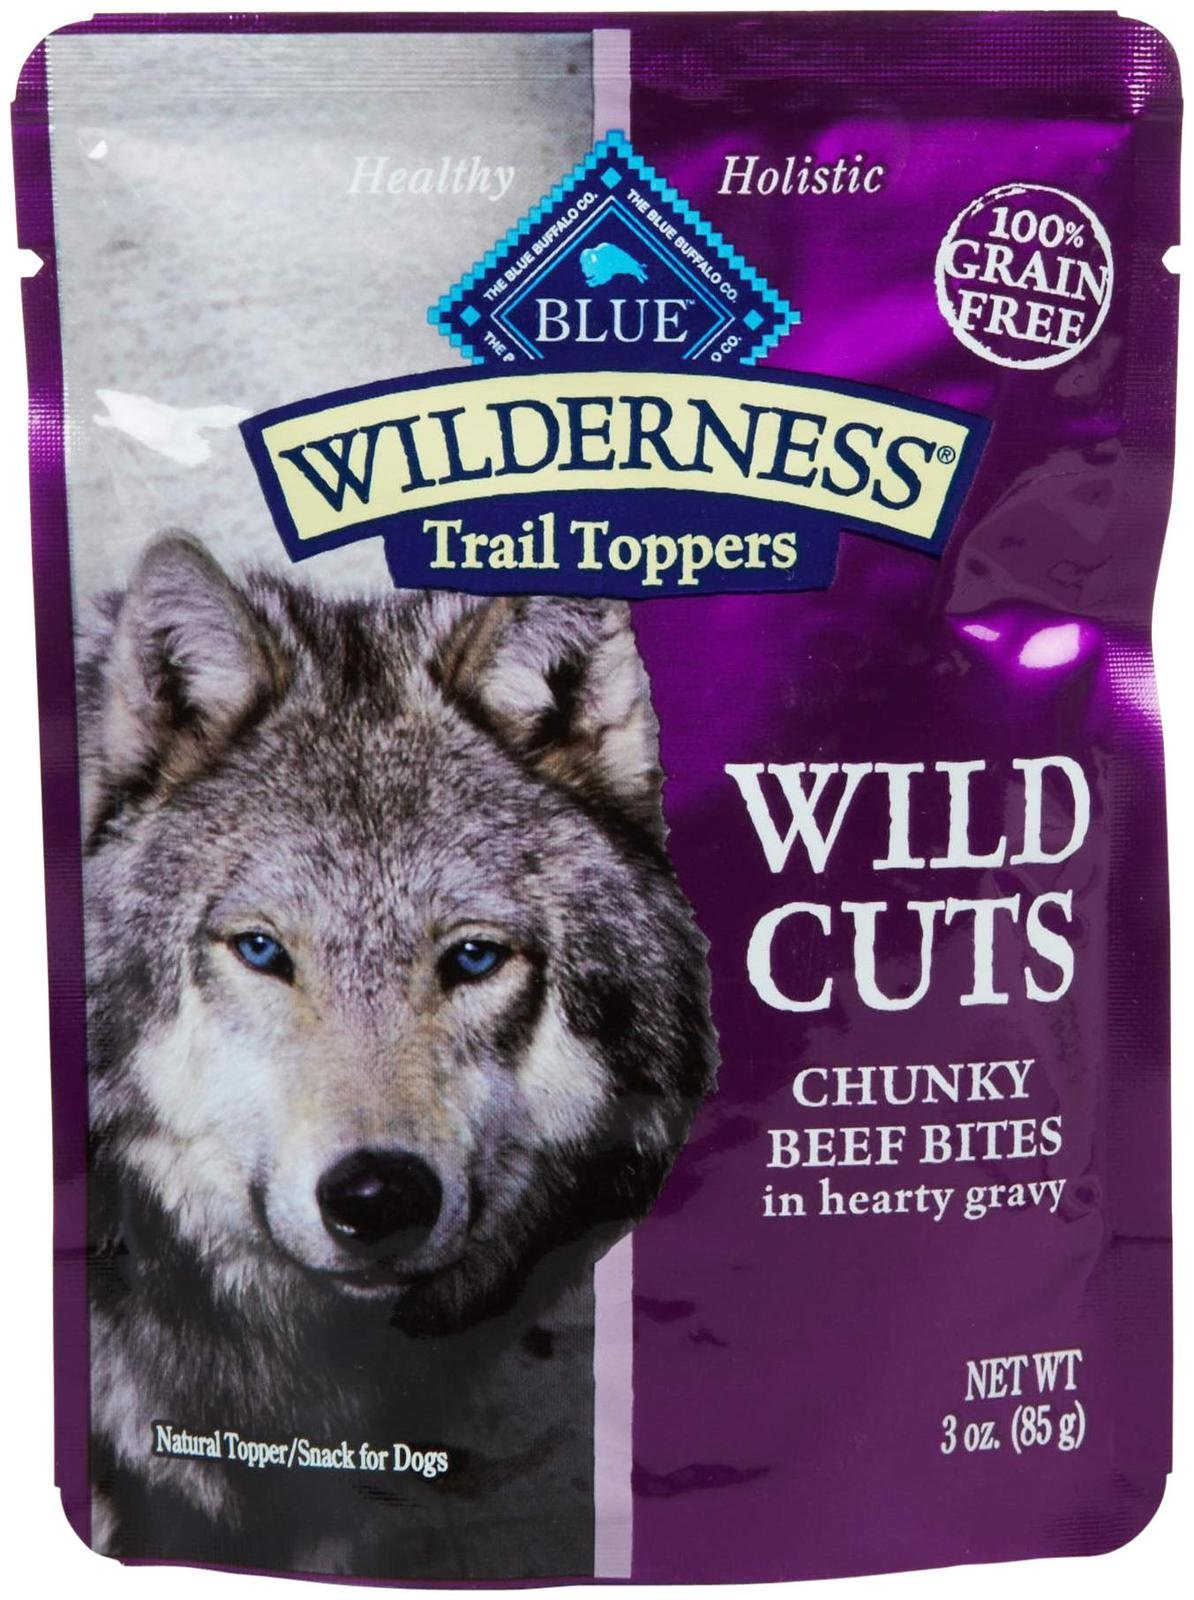 Blue Buffalo Wilderness Trail Toppers Chunky Beef Bites Dog Food, 24 By 3 Oz. by Blue Buffalo